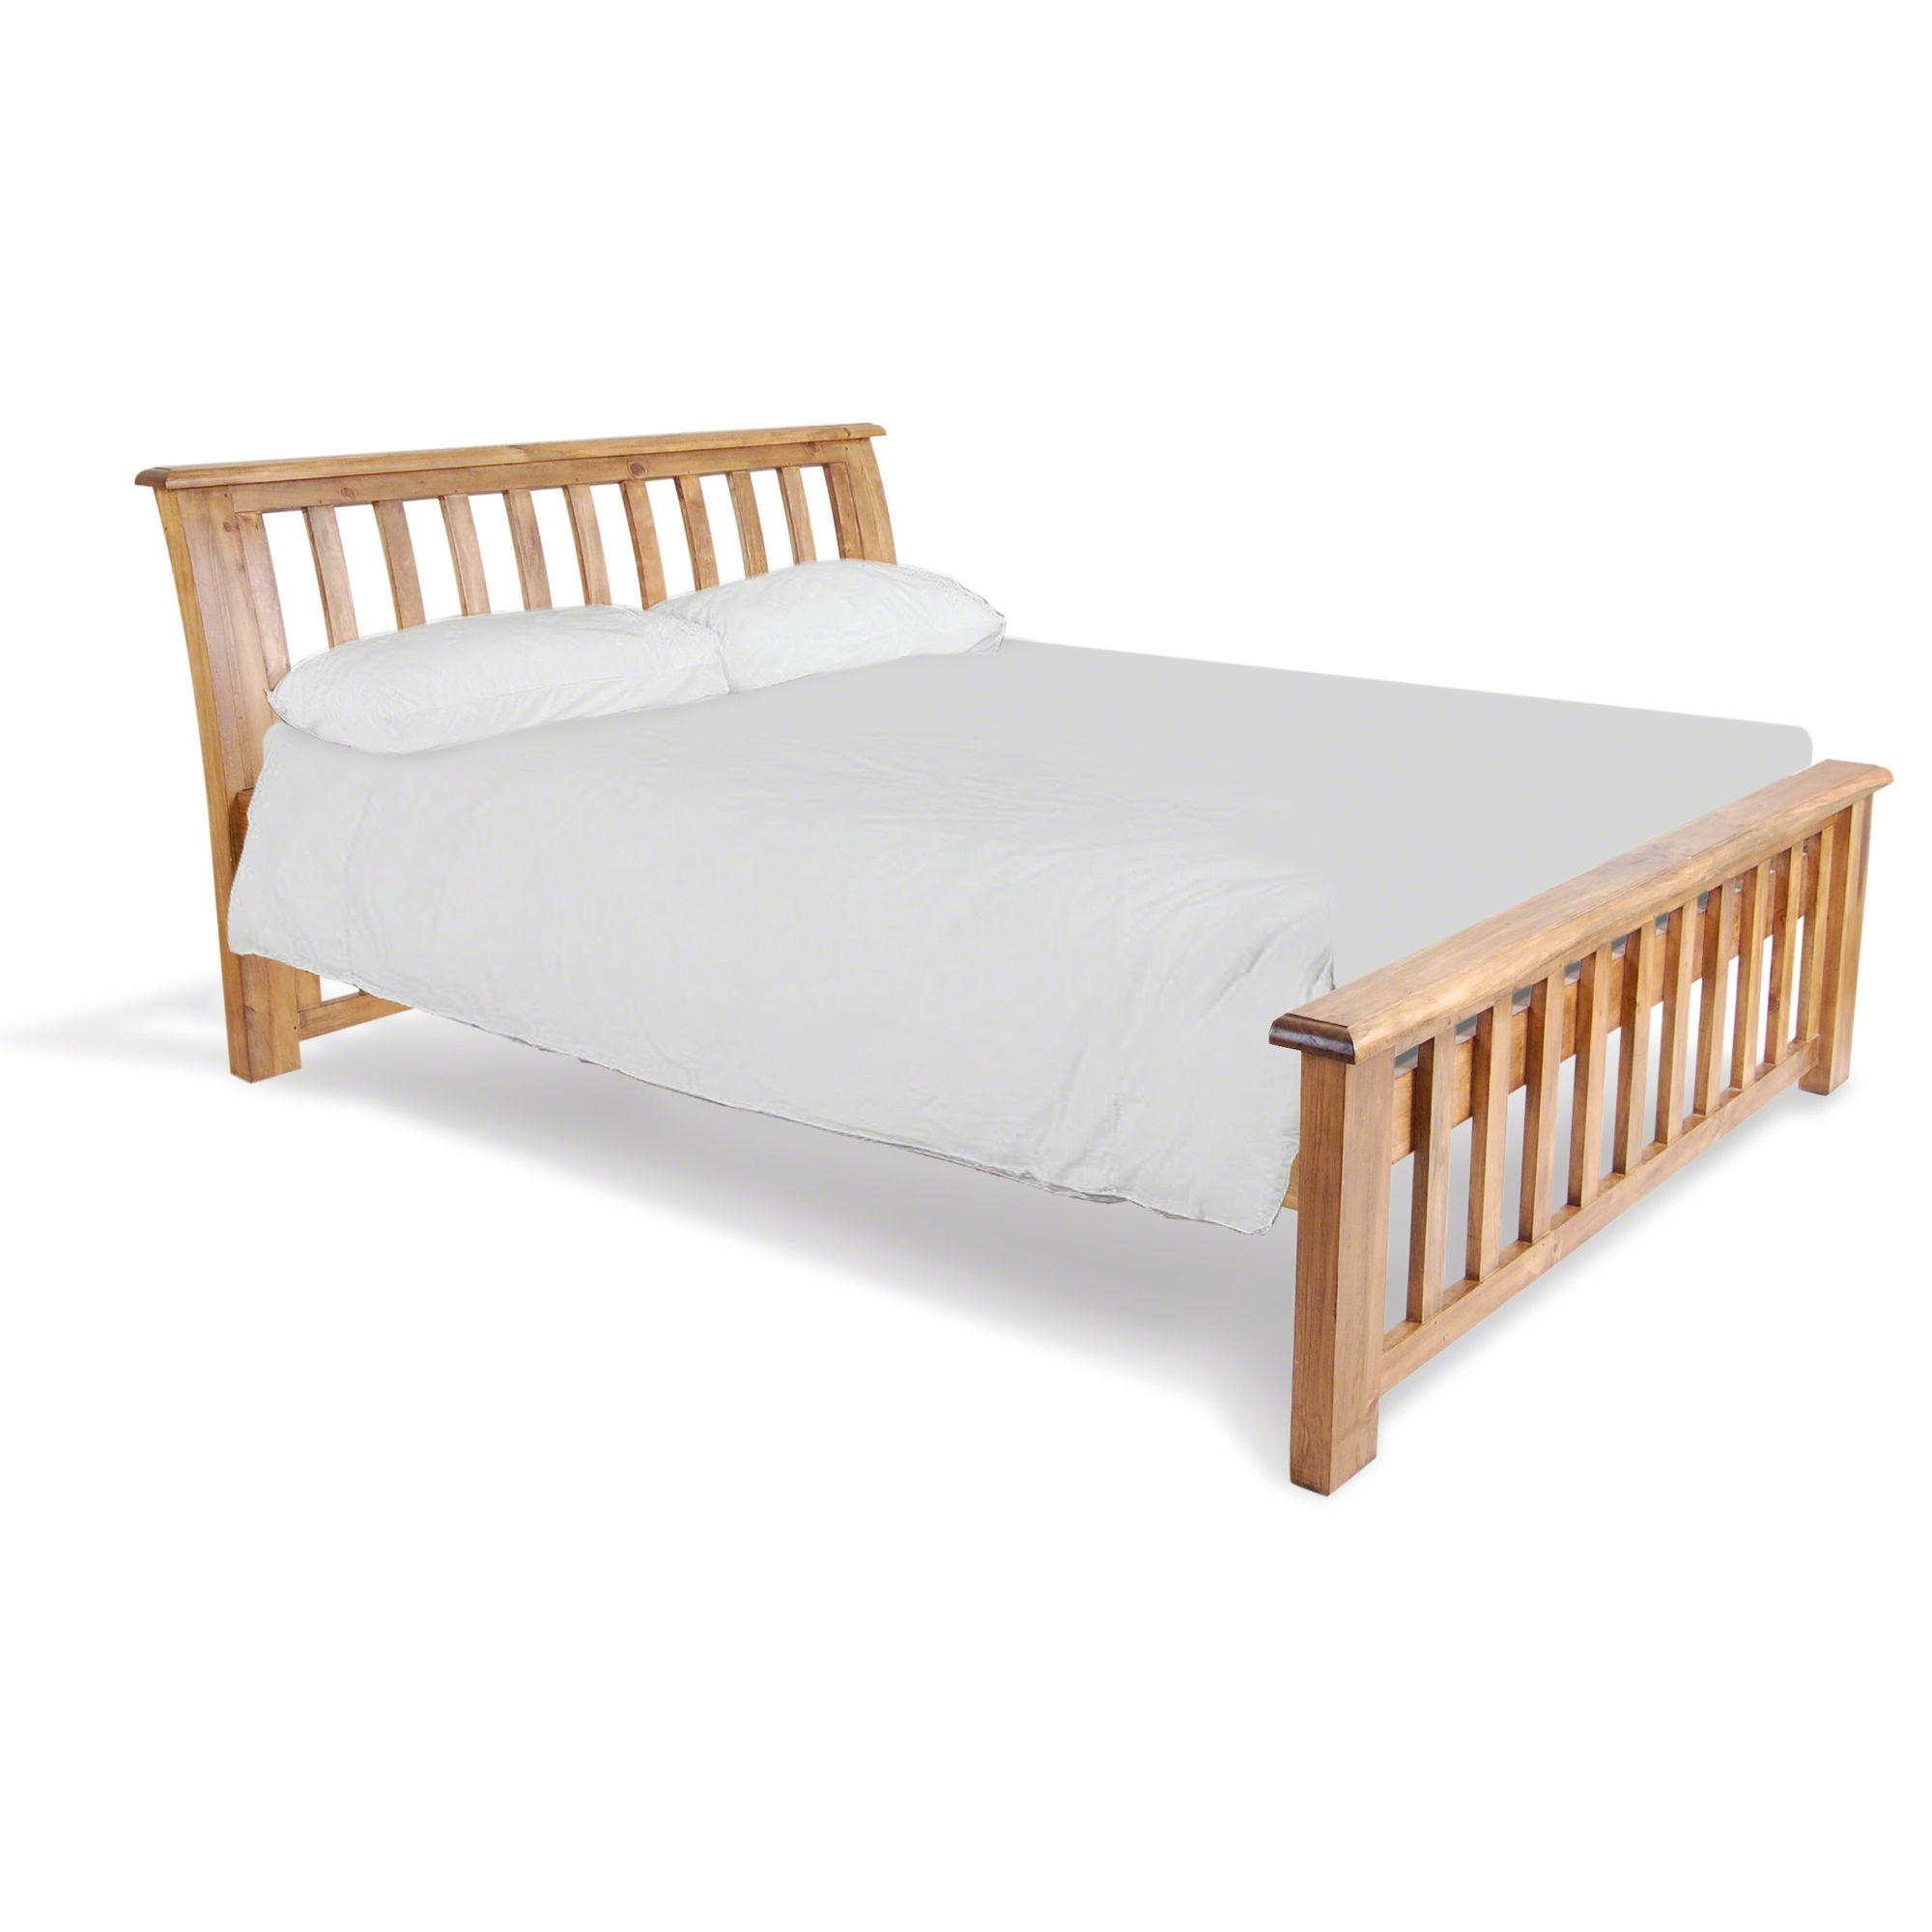 Oceans Apart Vintage King Sleigh Bed Frame at Tescos Direct